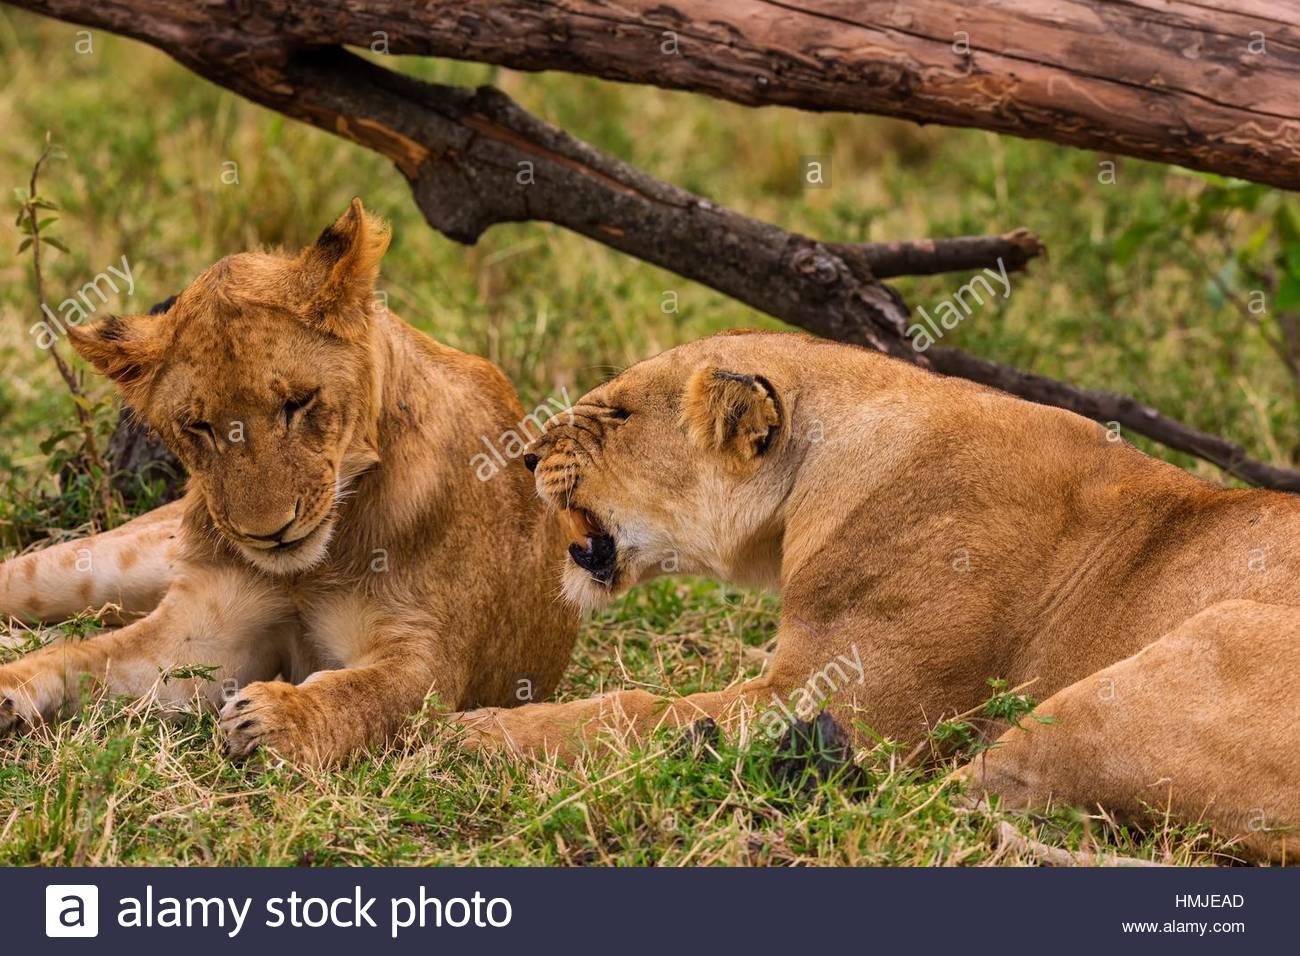 Lioness snarling at her cub. Masai Mara National Reserve, Kenya - Stock Image